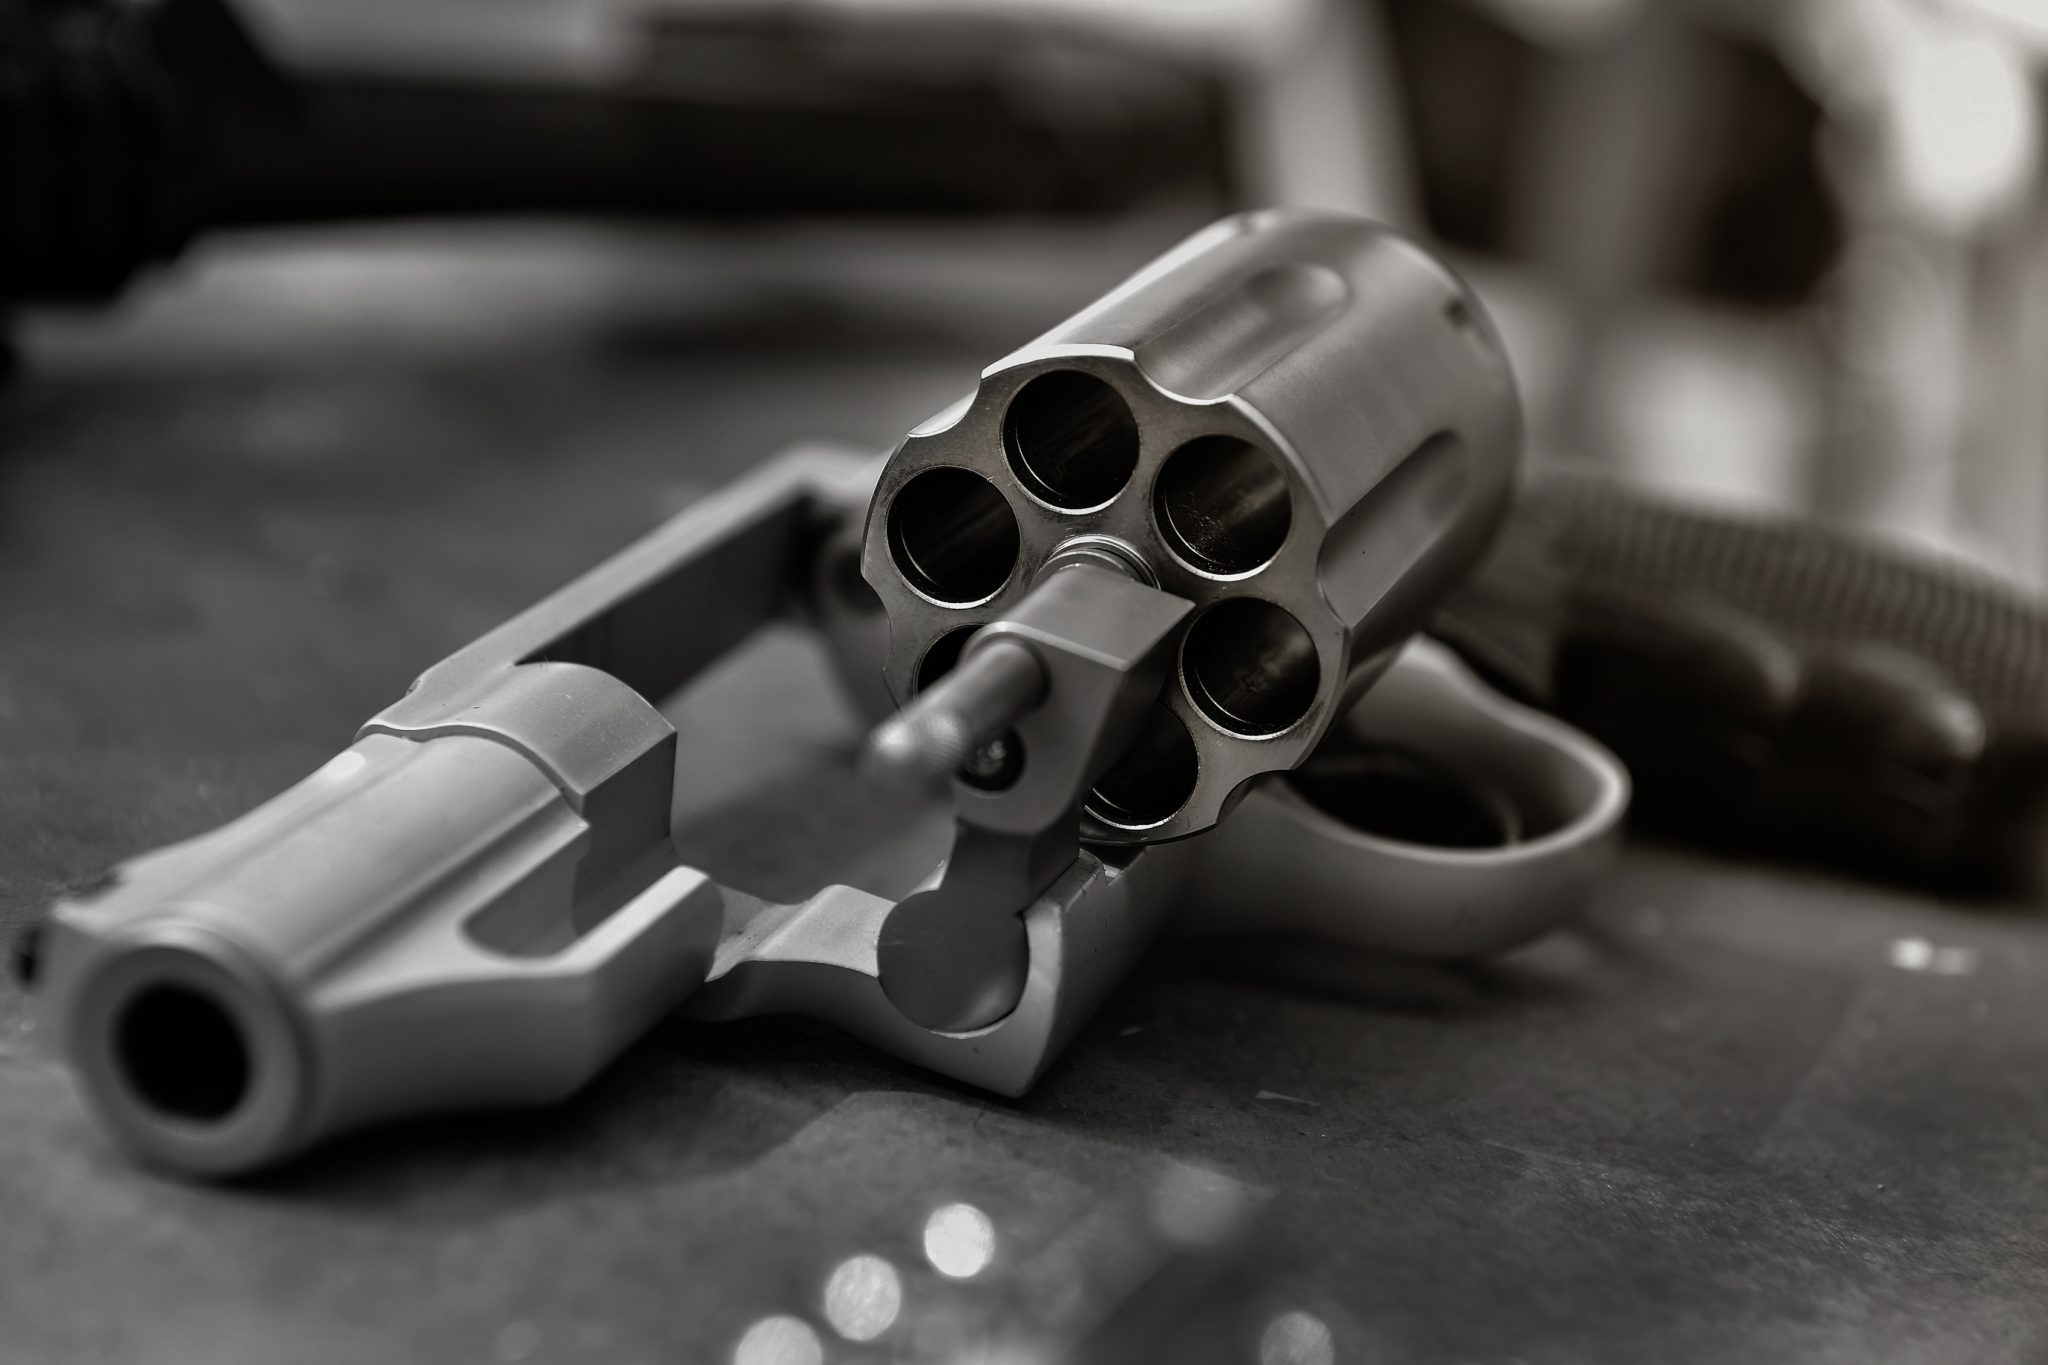 firearms-transfer-process-wa-what-you-need-to-know_sporting-systems